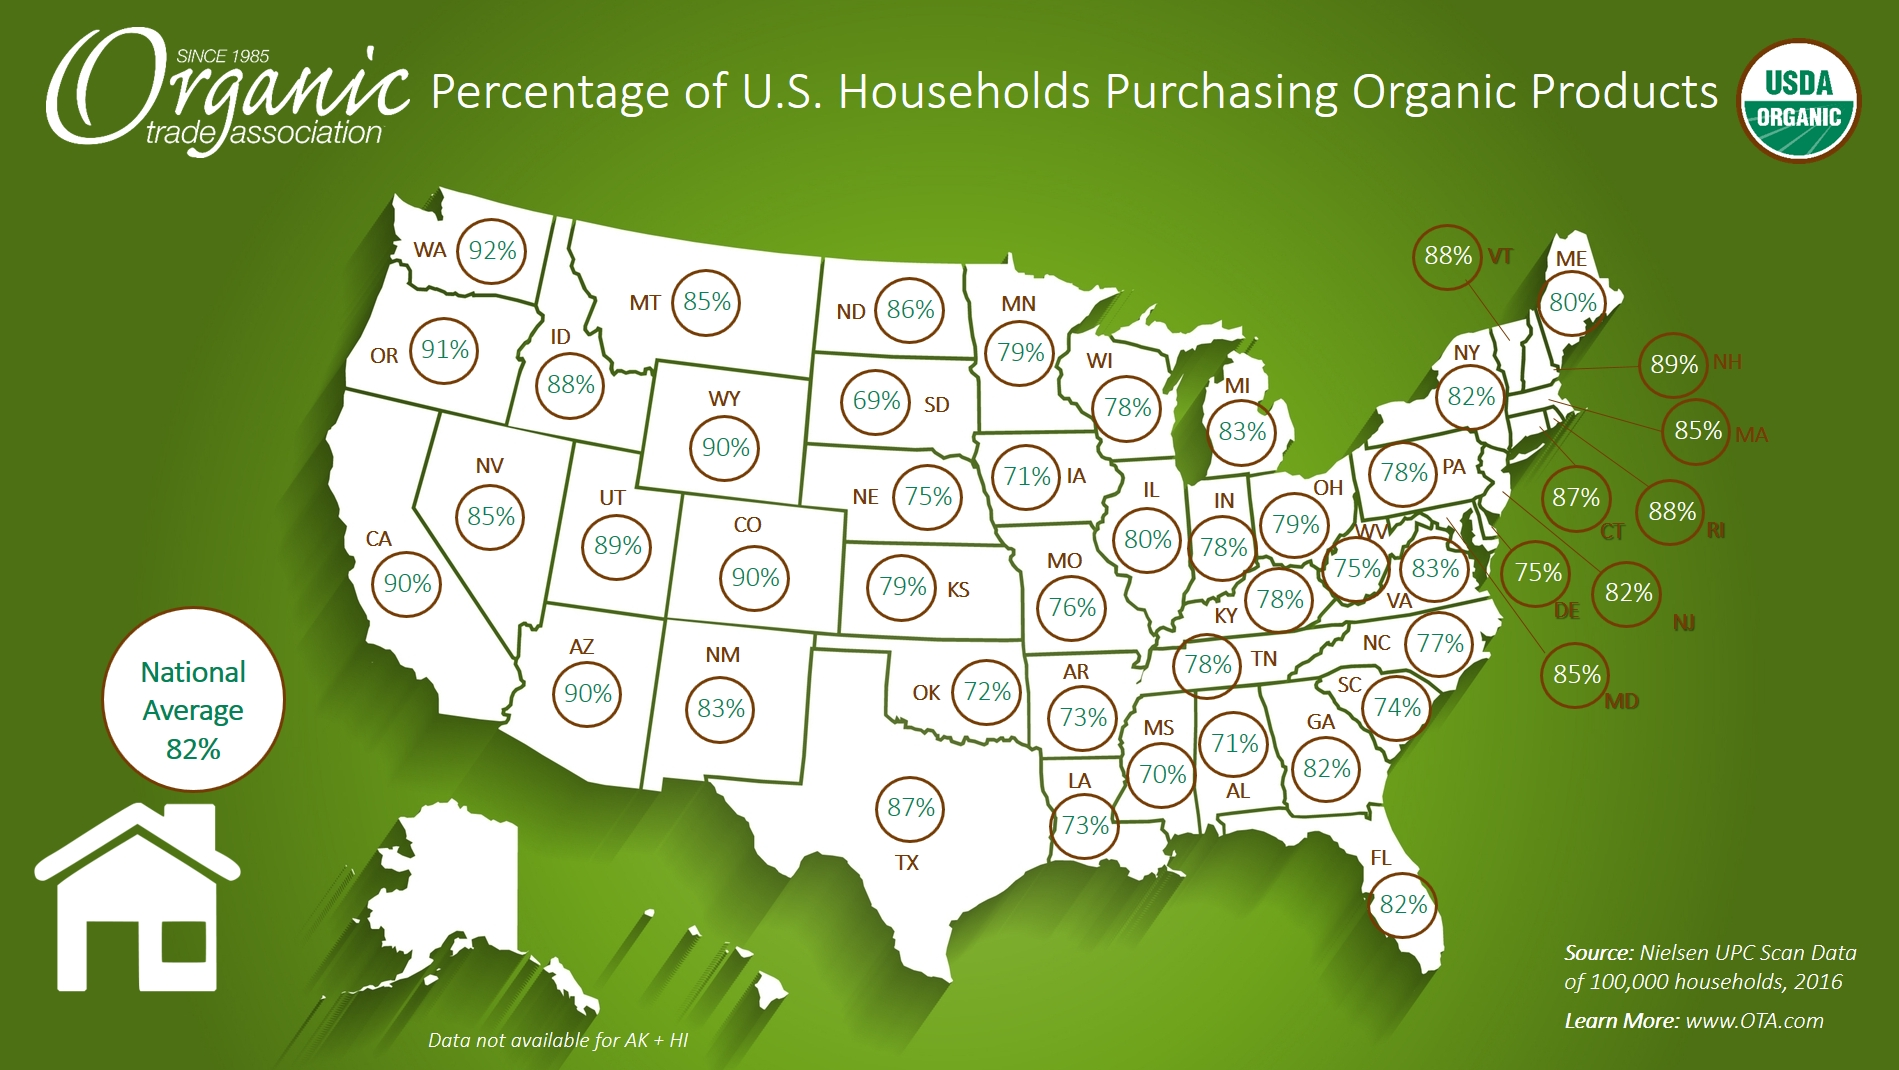 Organic Household Purchasing Map